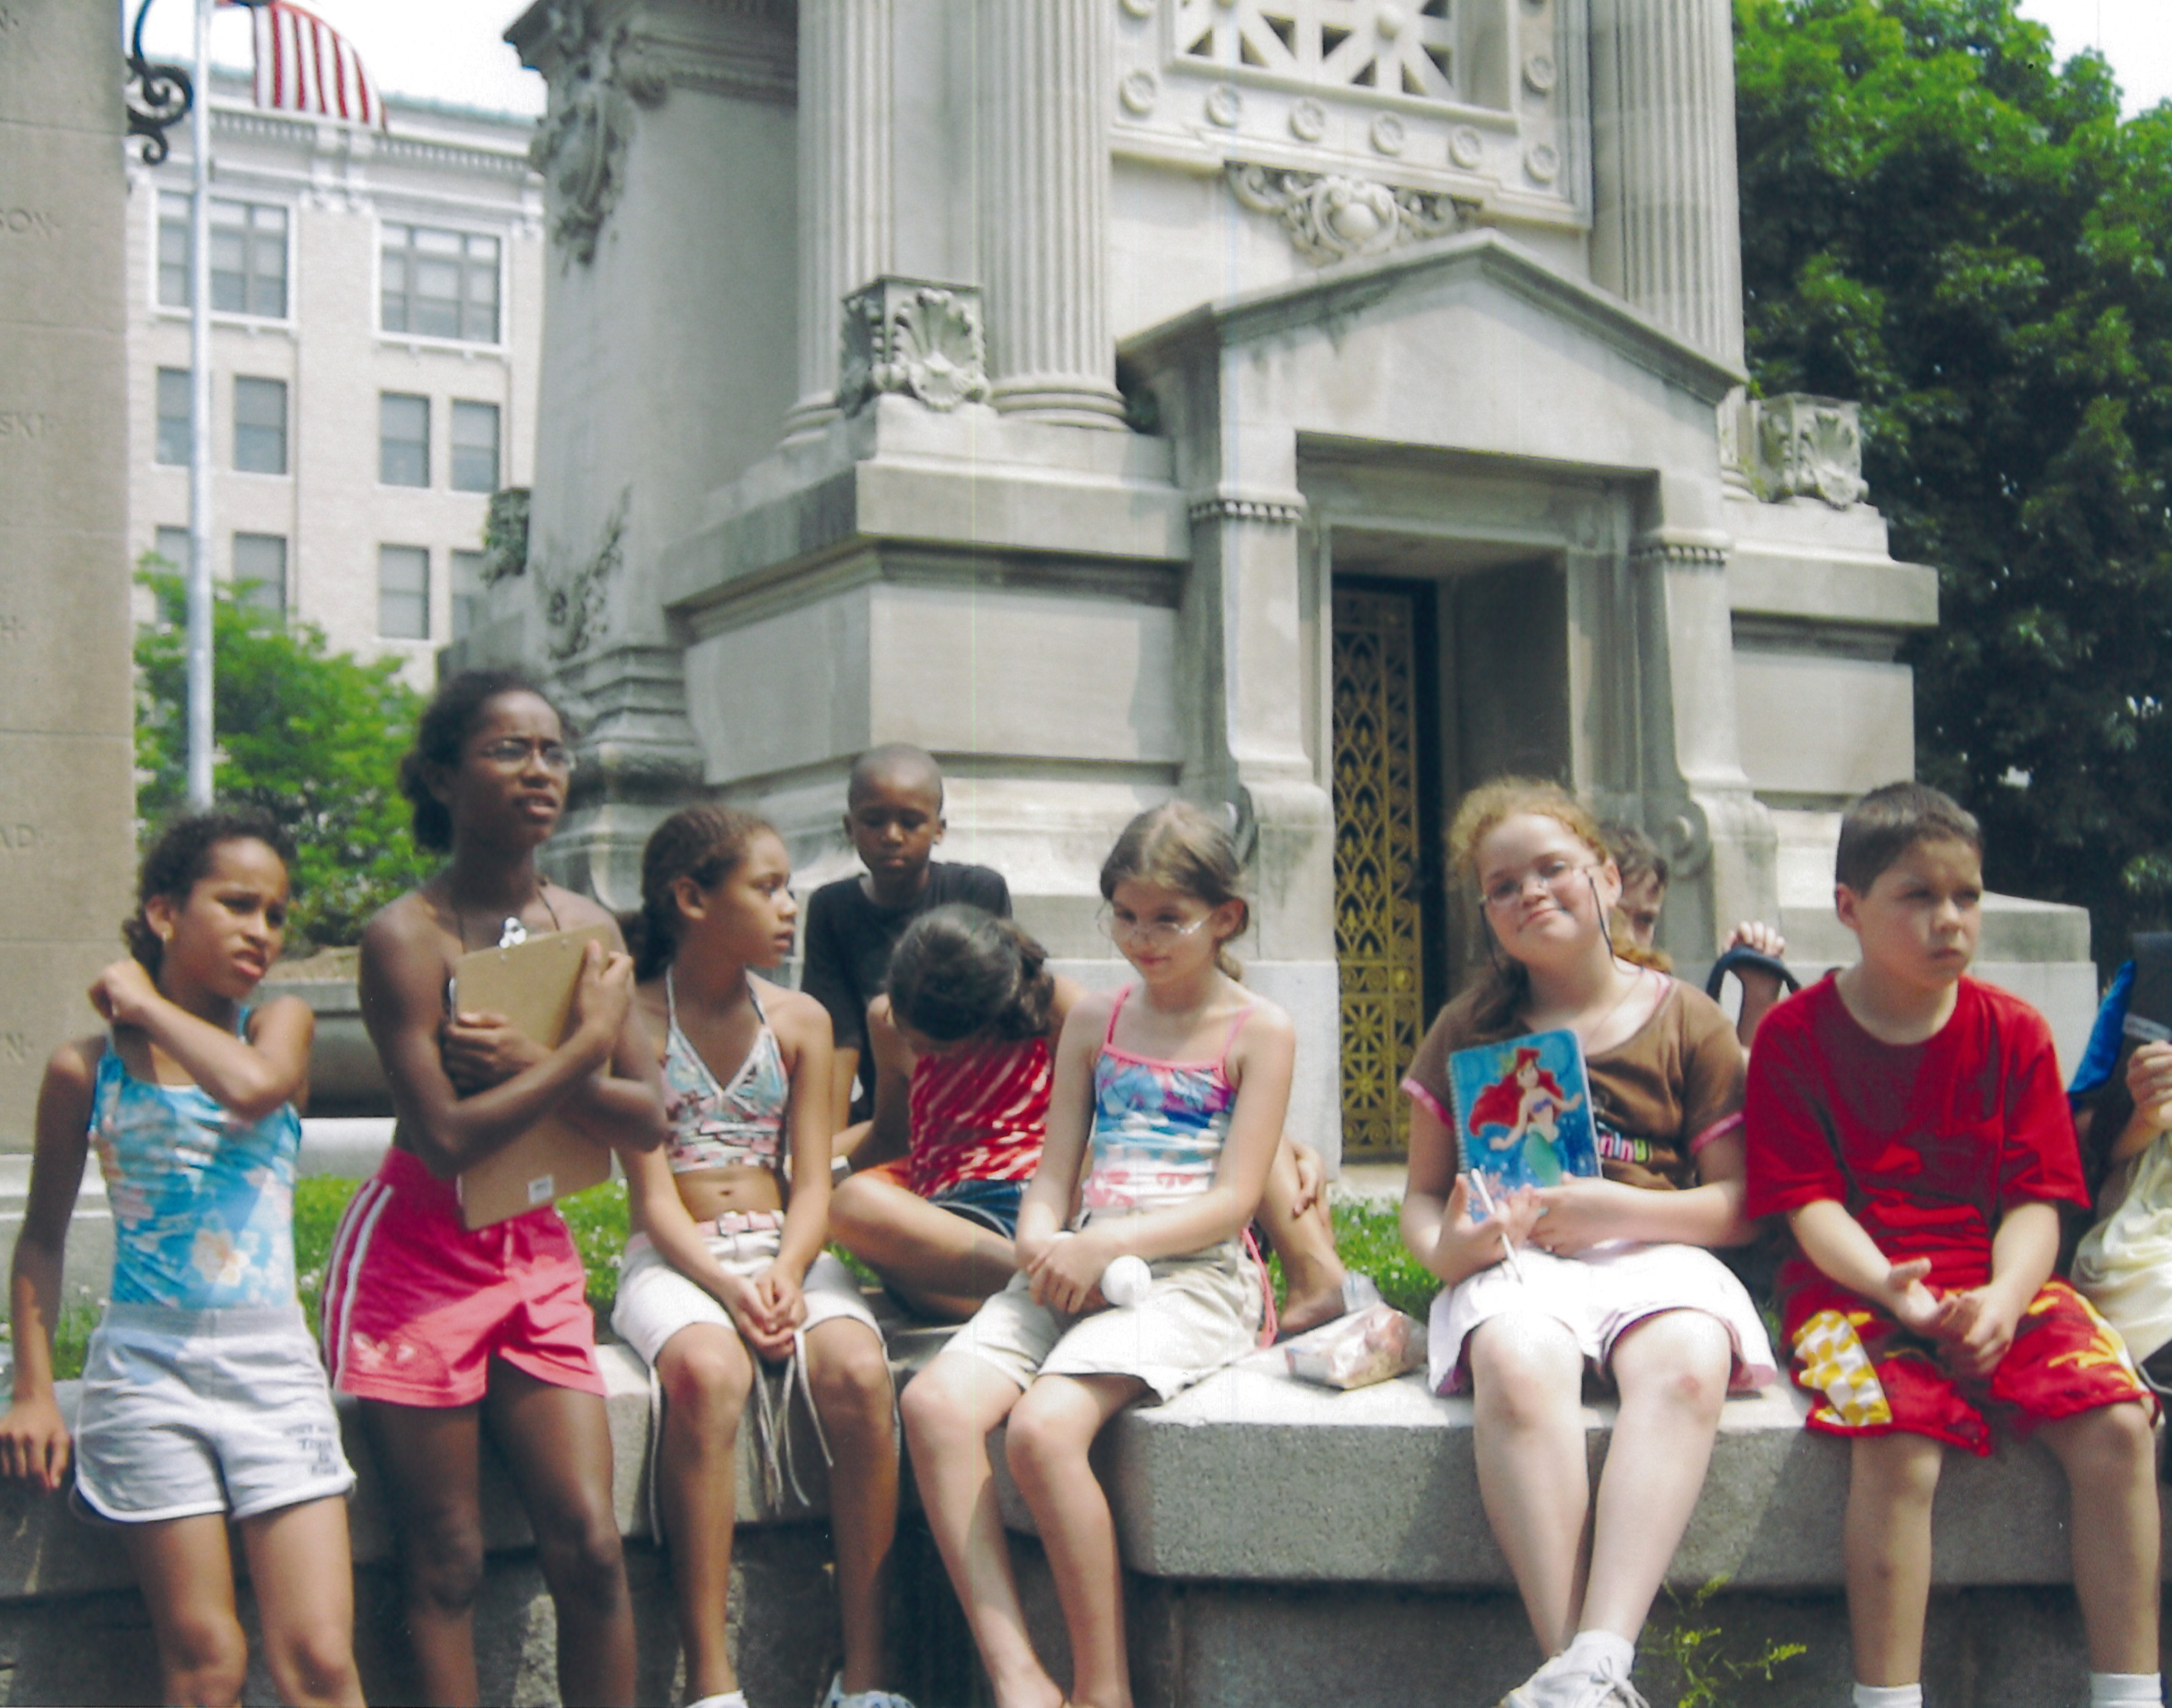 Children sit on a monument in New Britain's historic Central Park